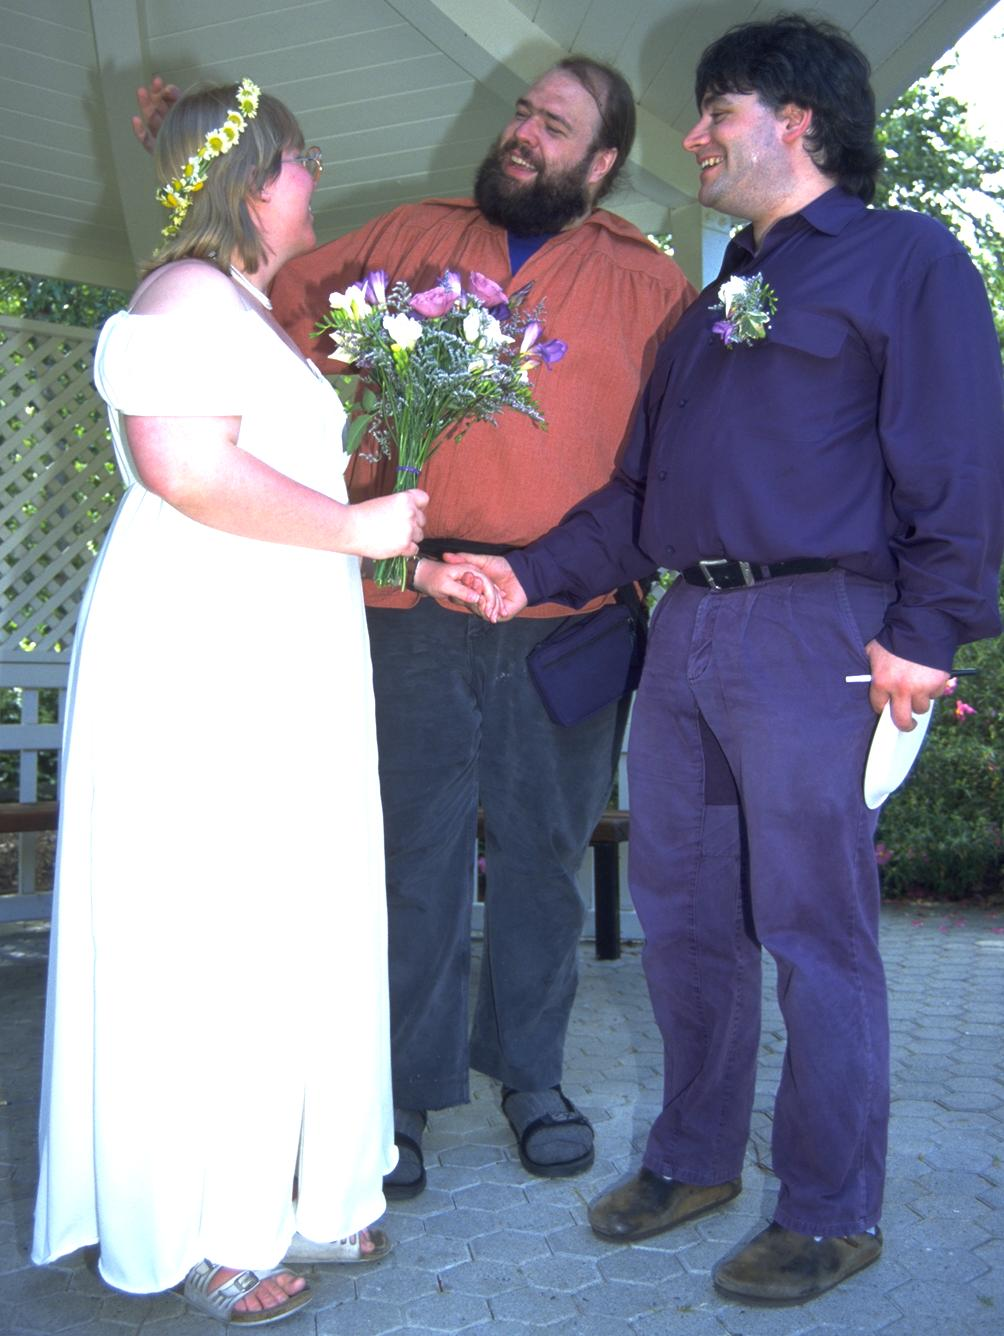 Richard was the officiant